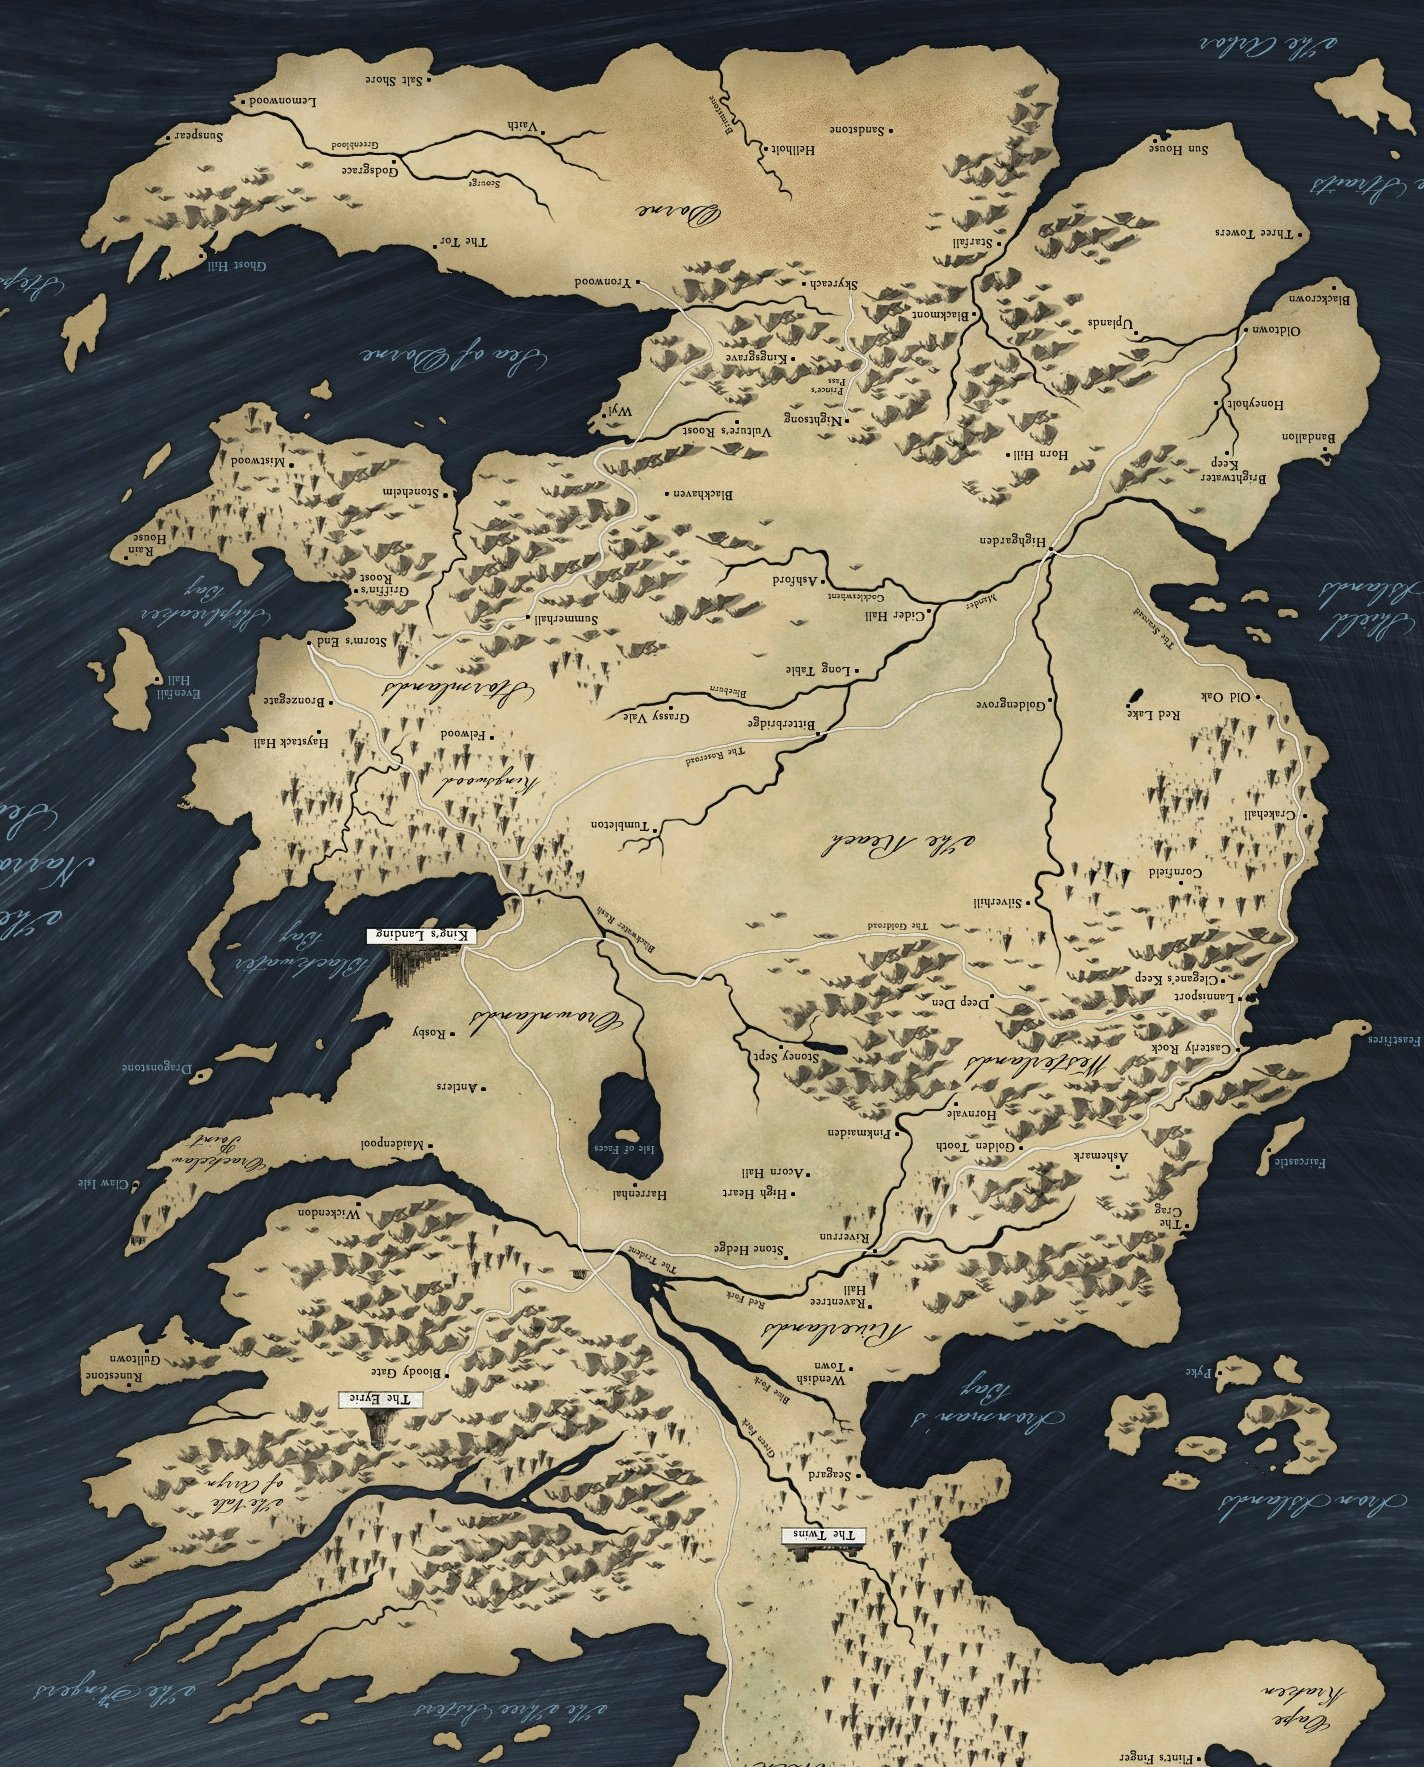 Desktop Wallpaper World Map: Game Of Thrones Map Wallpaper